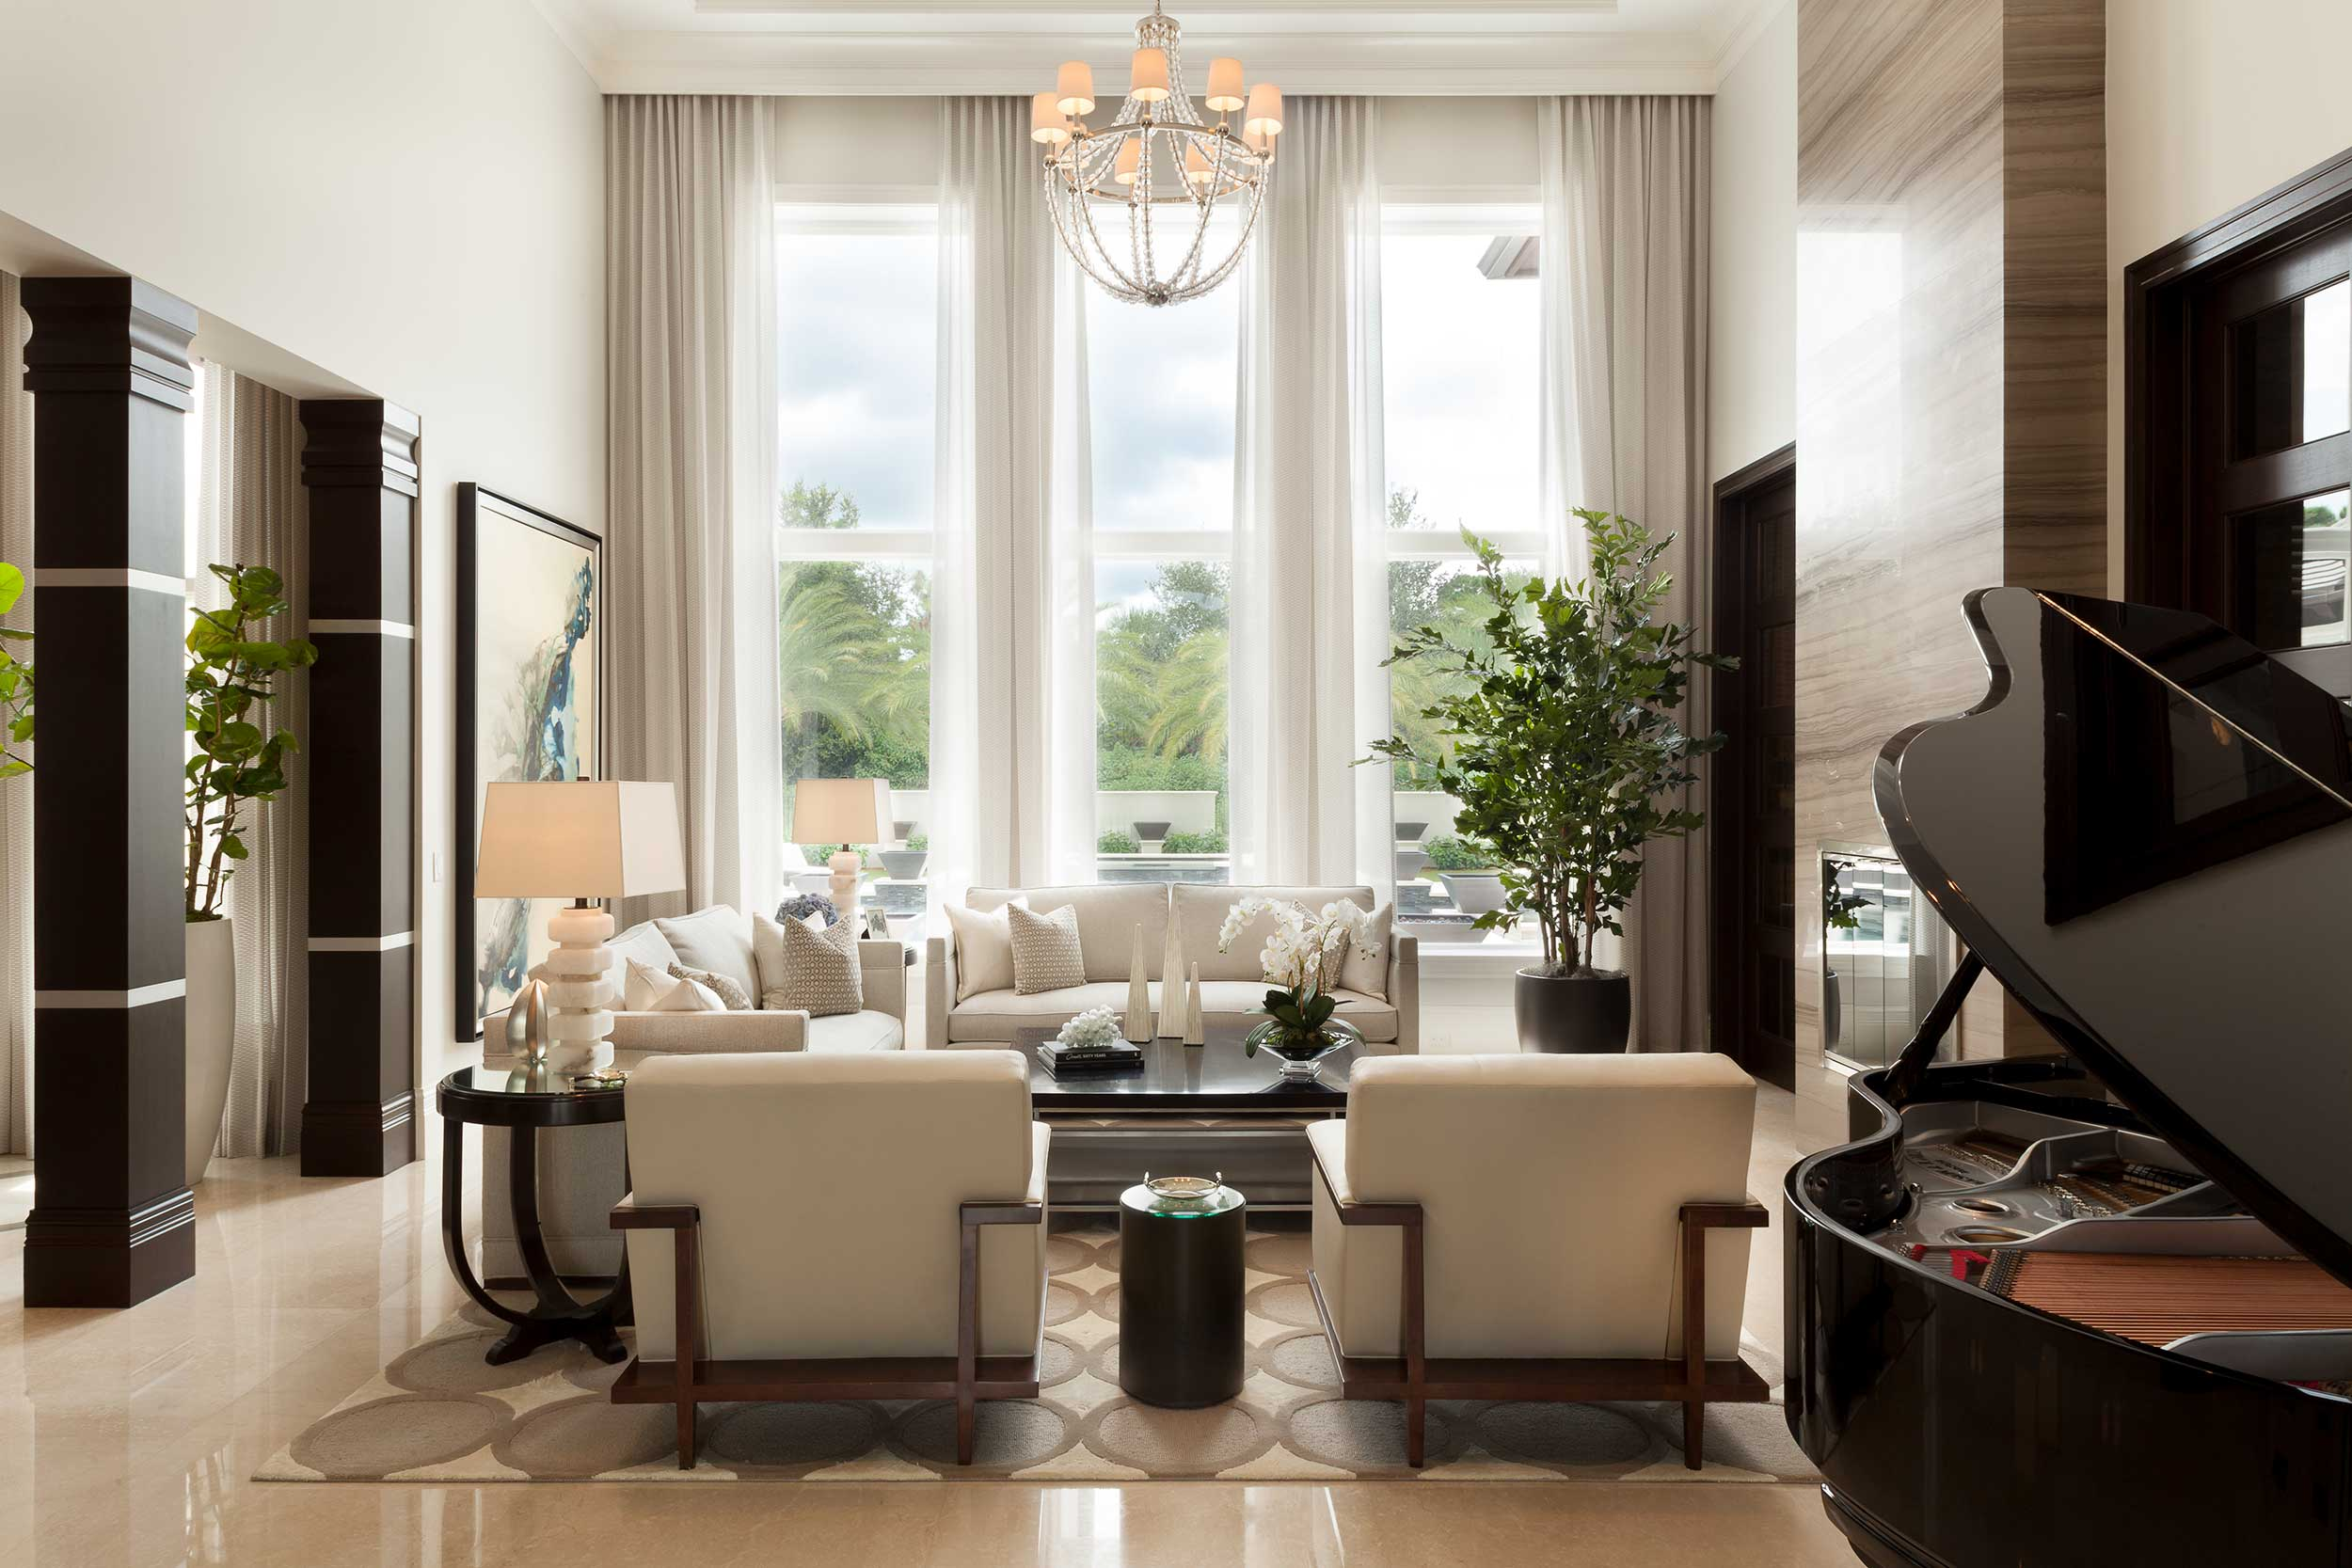 exciting interior design project in Palm Beach